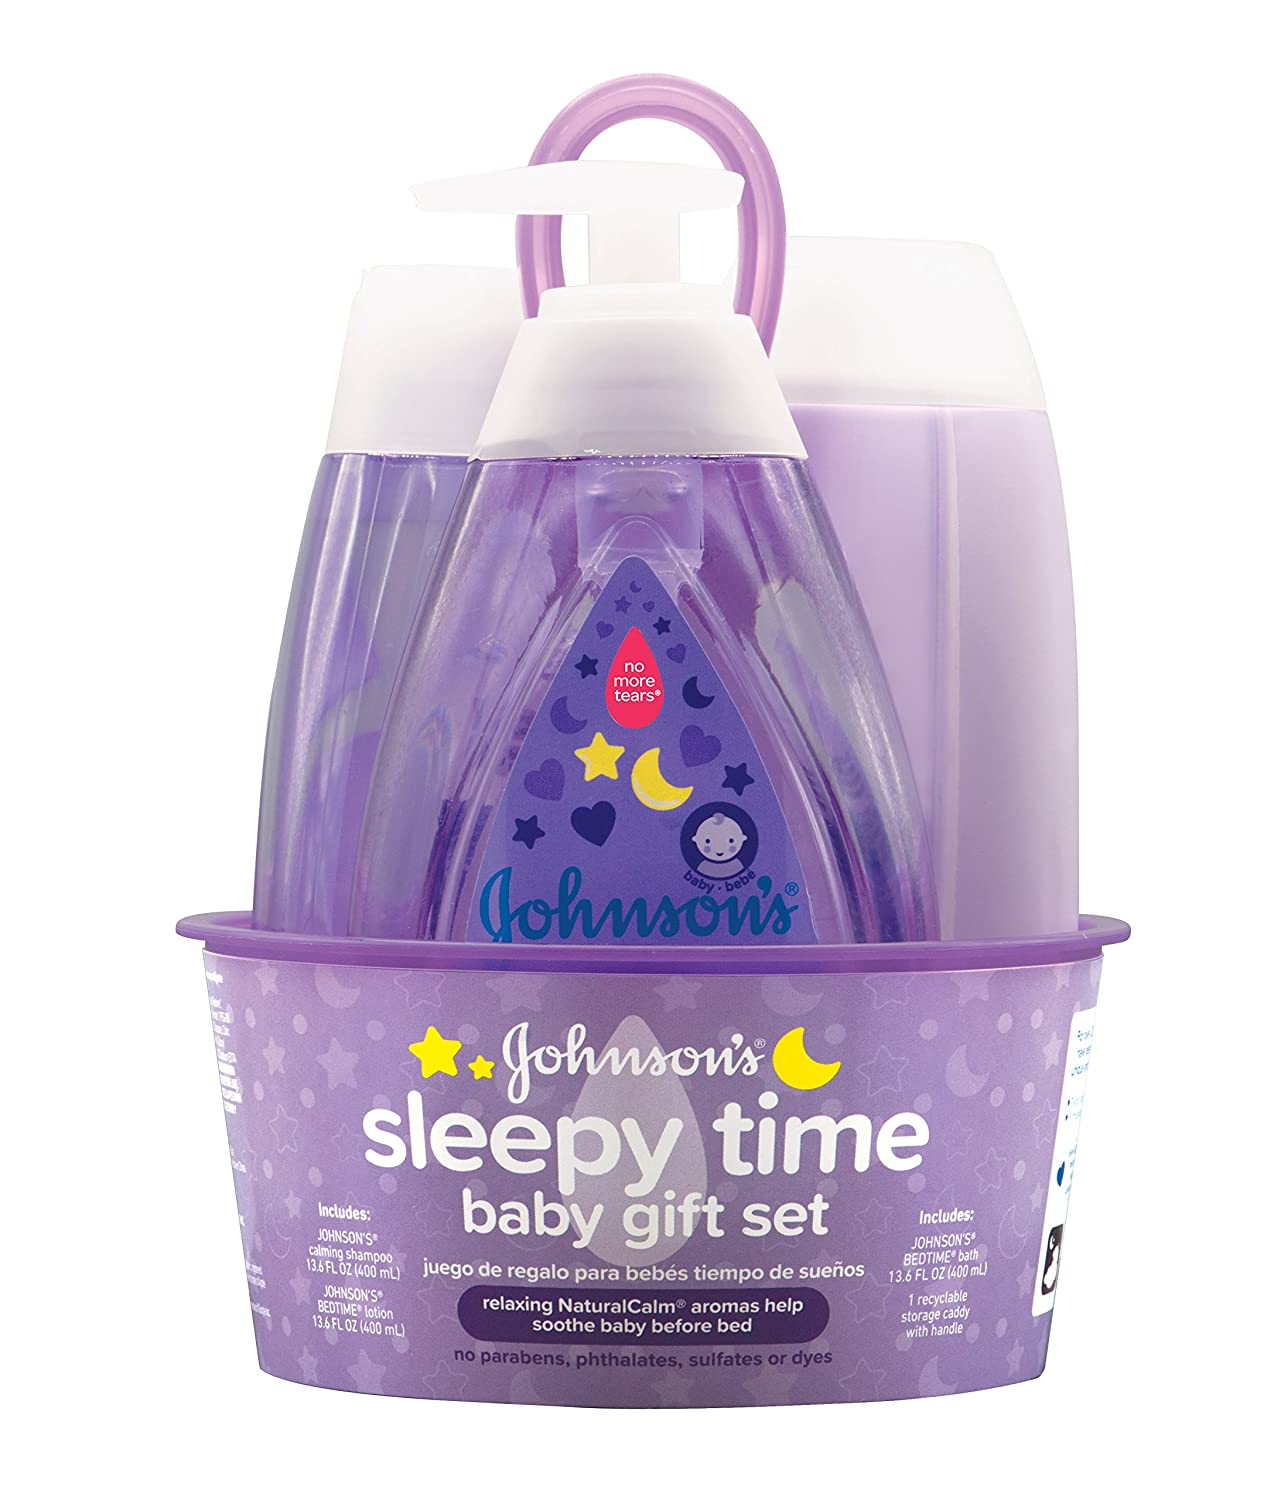 Johnson\'s Sleepy Time Baby Gift Set with Relaxing NaturalCalm Aromas, Bedtime Baby Essentials, Hypoallergenic & Parben-Free (4 Items)